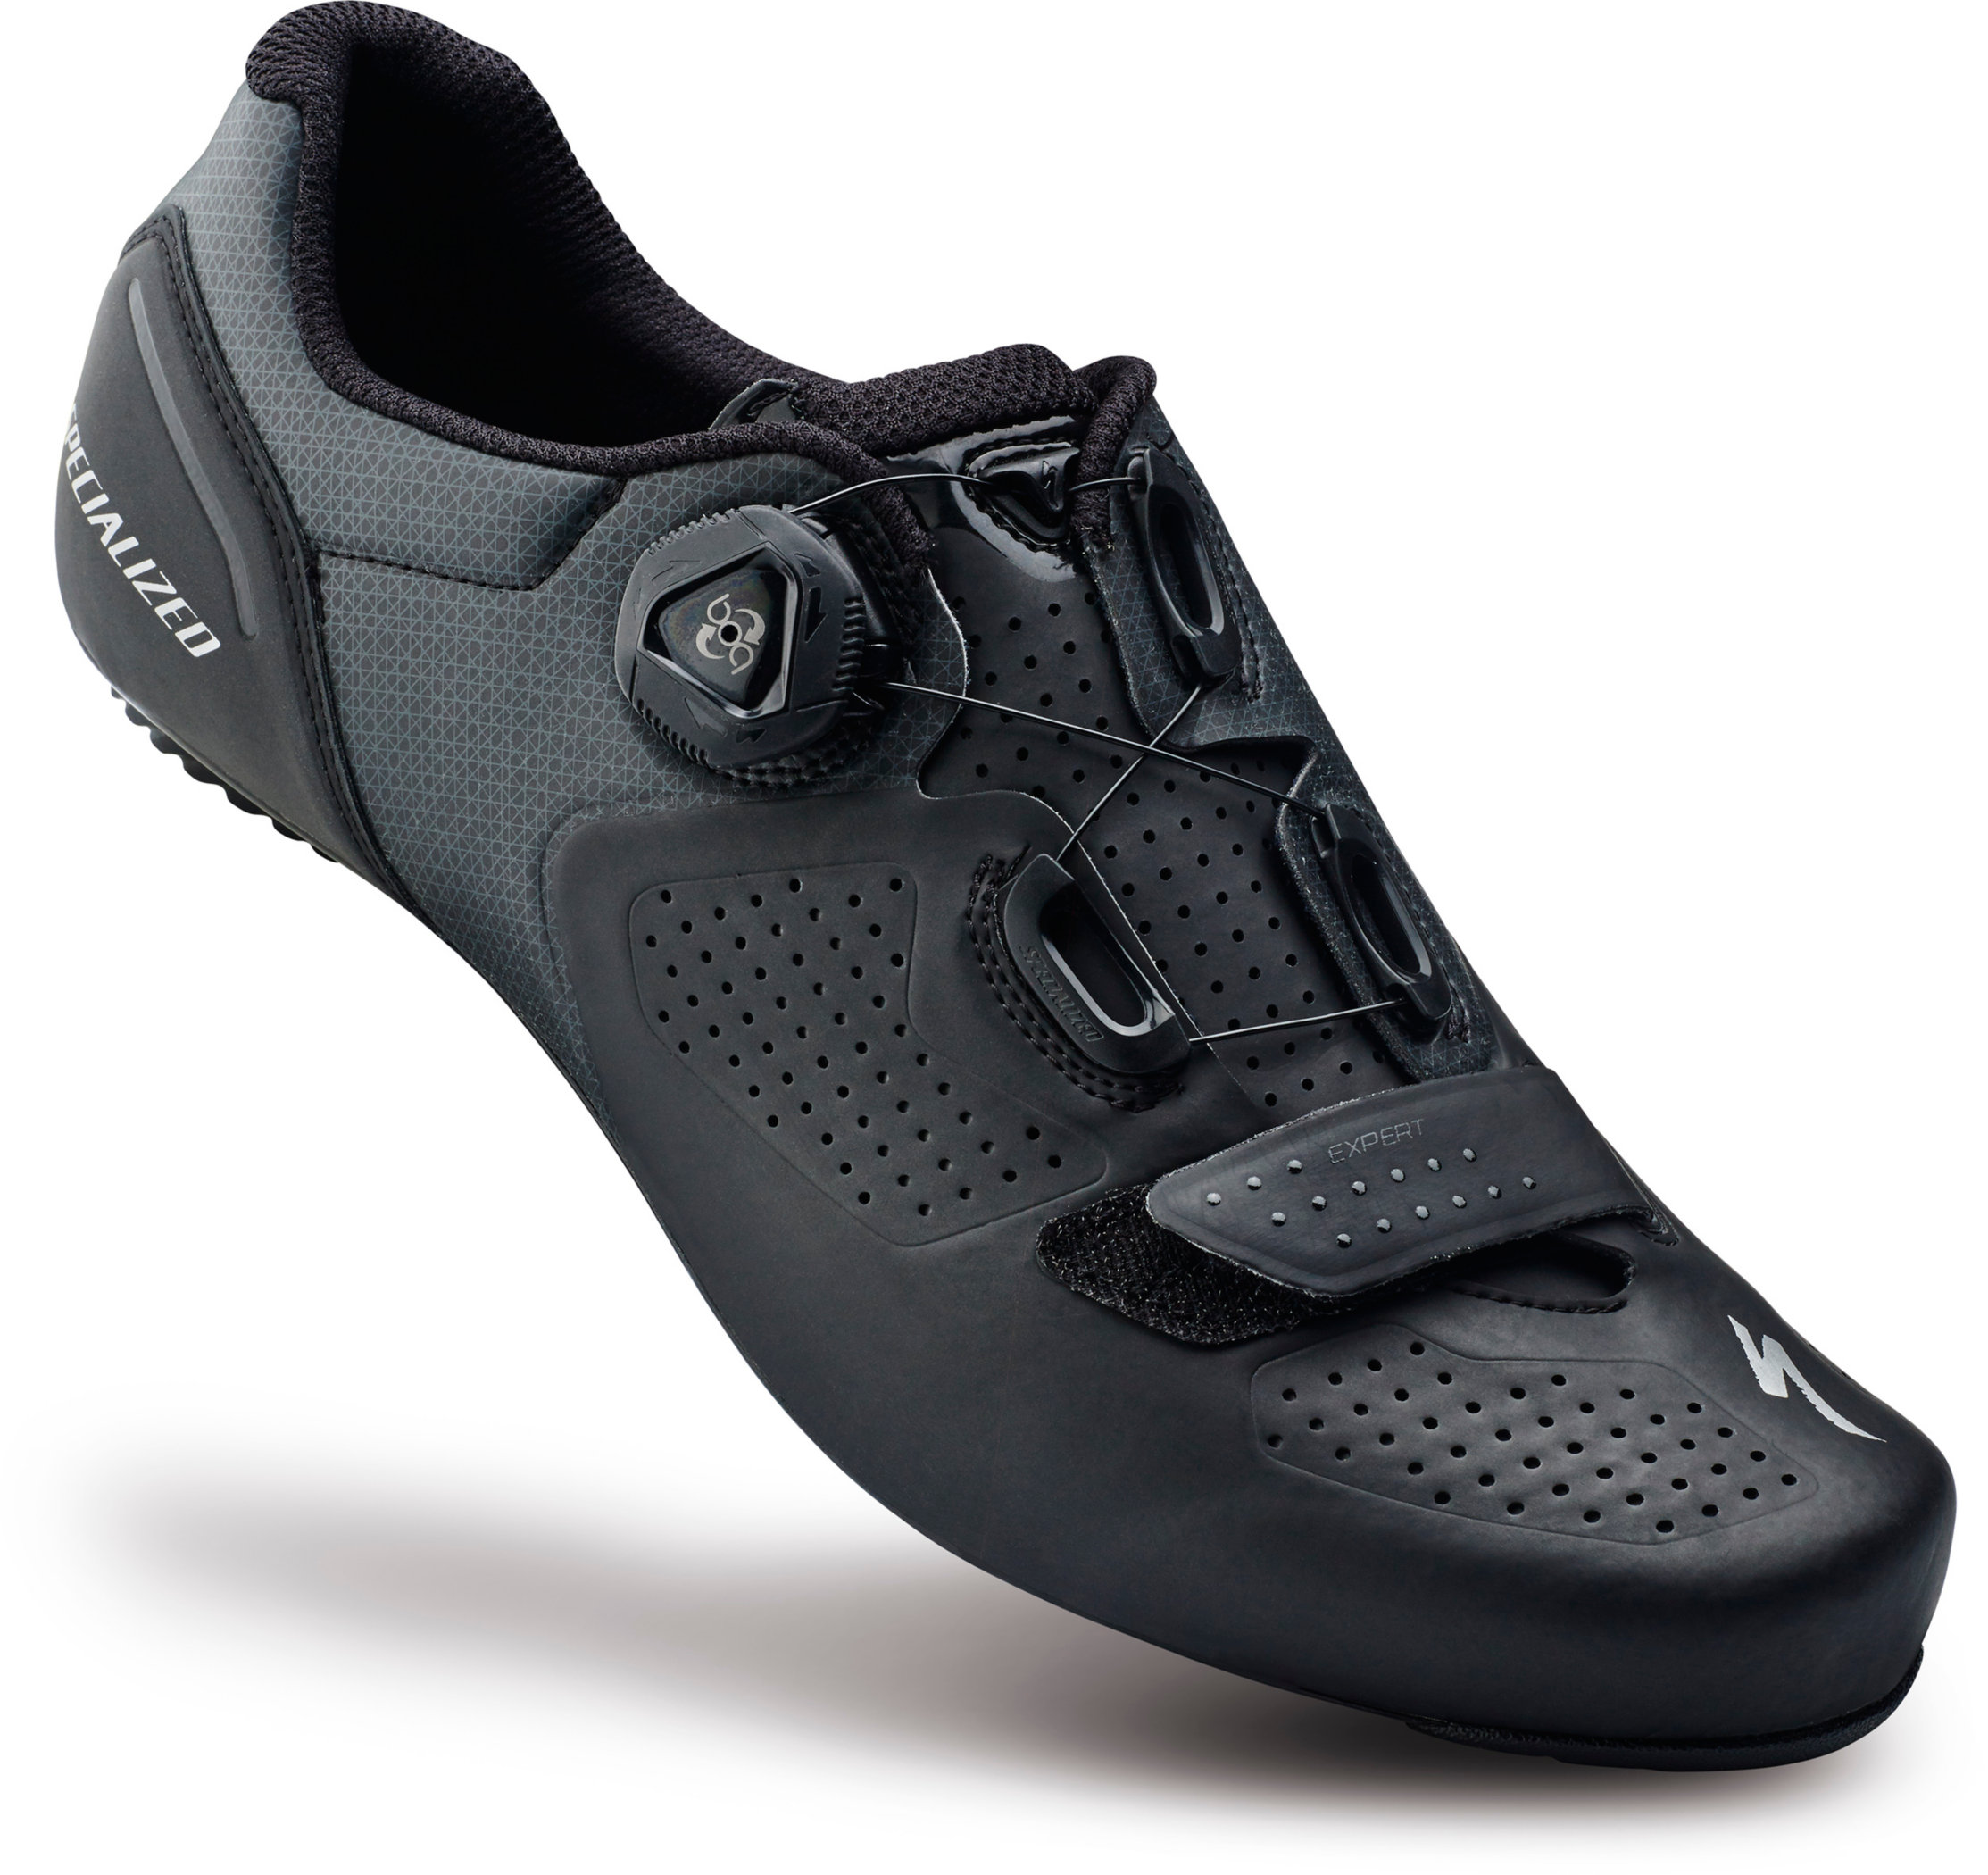 SPECIALIZED EXPERT RD SHOE BLK 46/12.25 - Bikedreams & Dustbikes